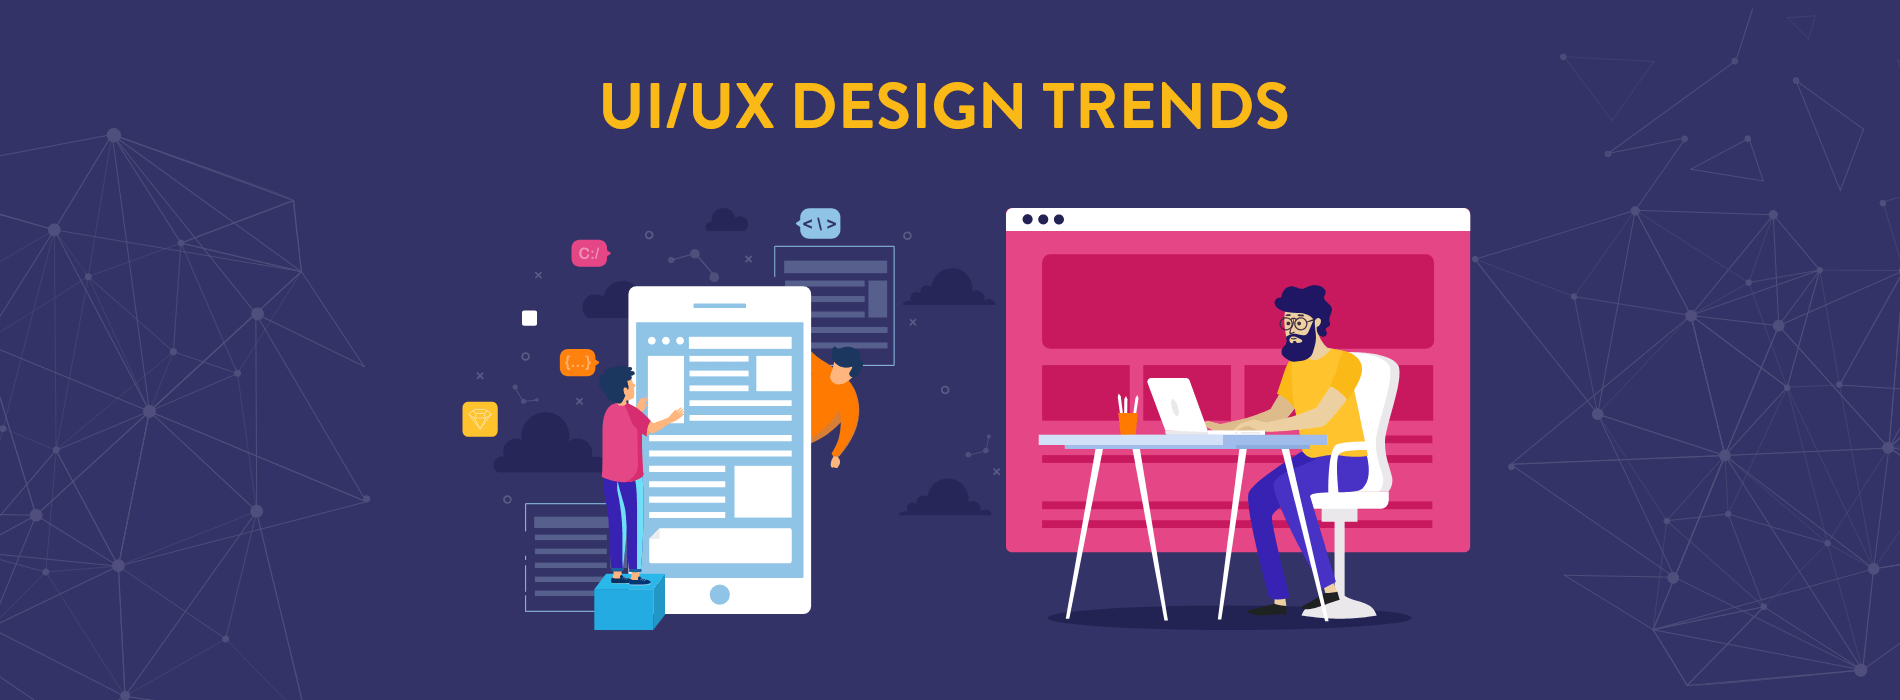 5 Big Changes in UI/UX Design Trends You Should Watch Out For